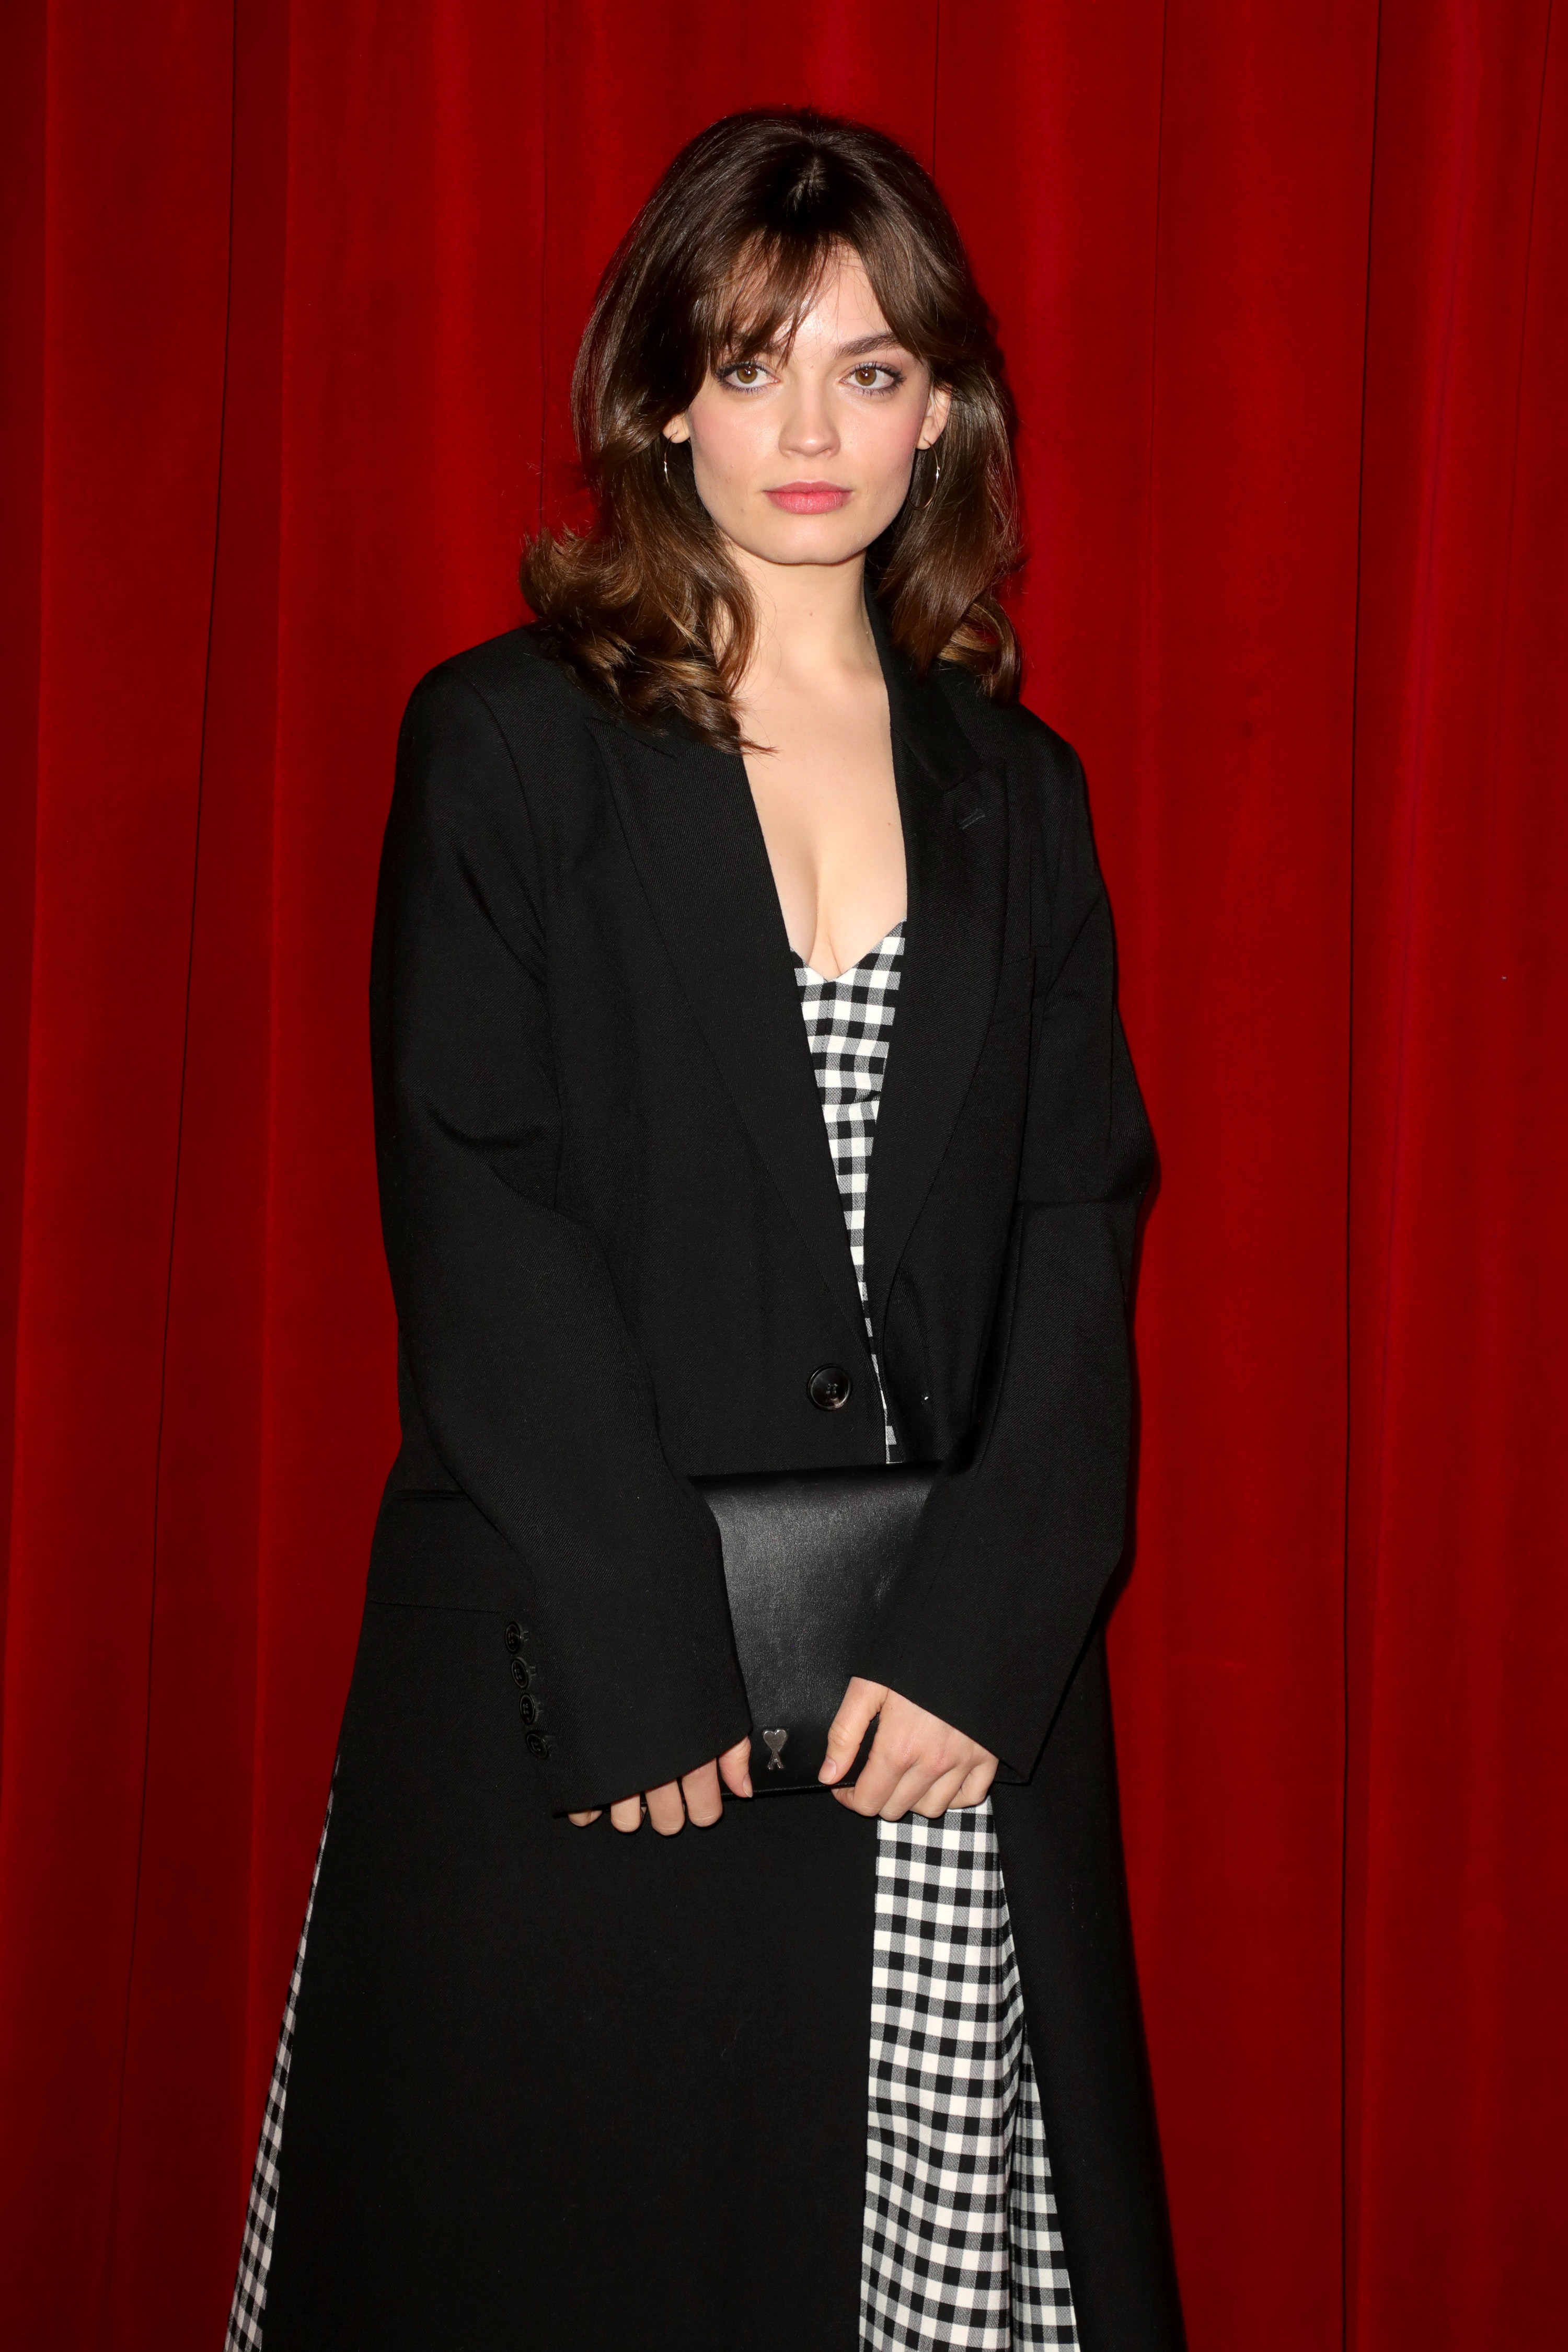 Emma in a long coat jacket and checkered dress